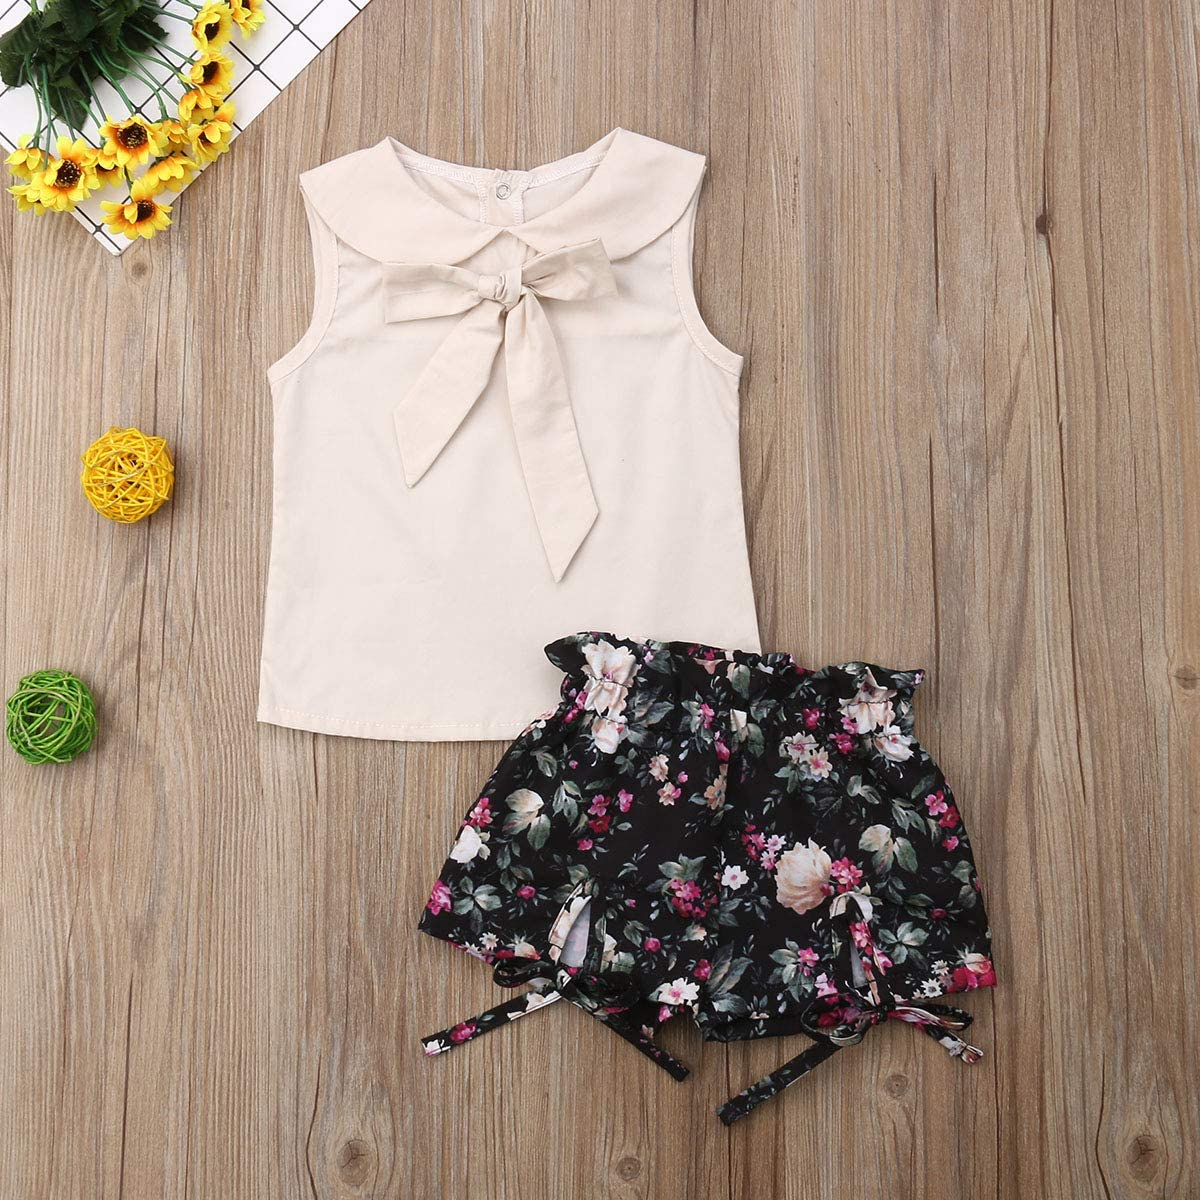 2 pcs//Set Toddler Baby Girl Clothes Flower T-Shirt Tops Sunflower Leggings Pants Outfit